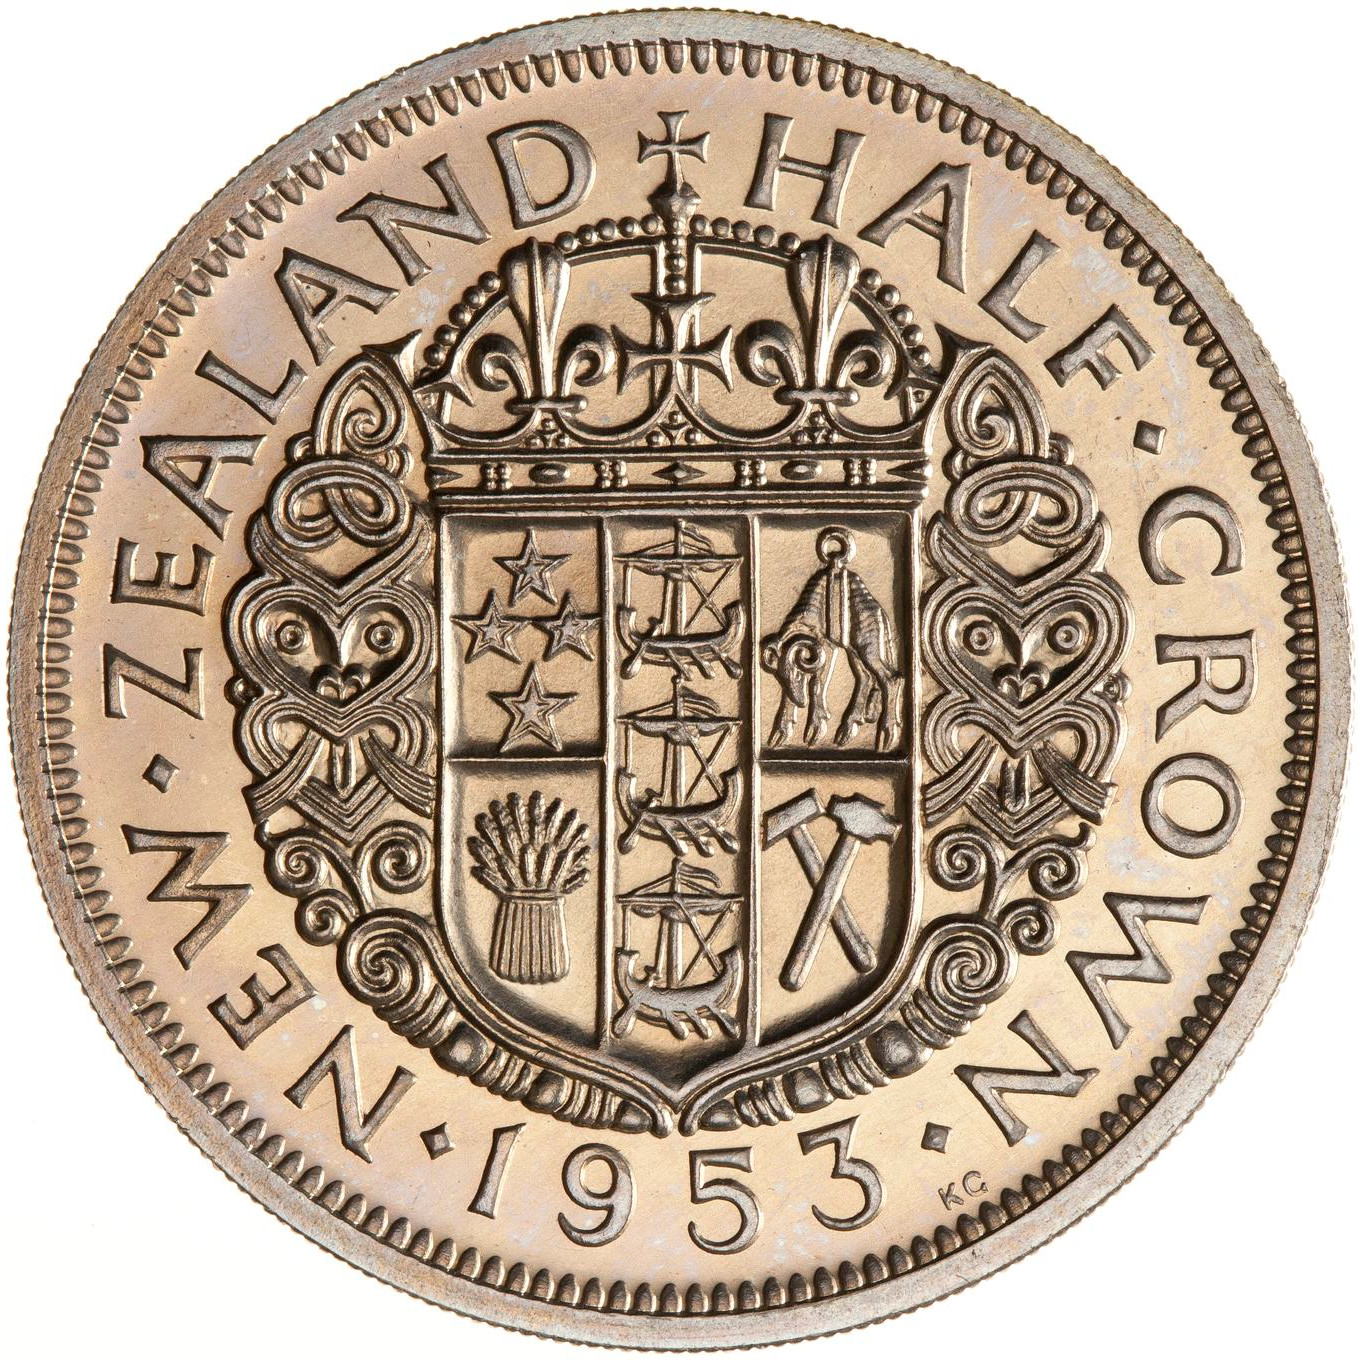 Half Crown 1953: Photo Proof Coin - 1/2 Crown, New Zealand, 1953